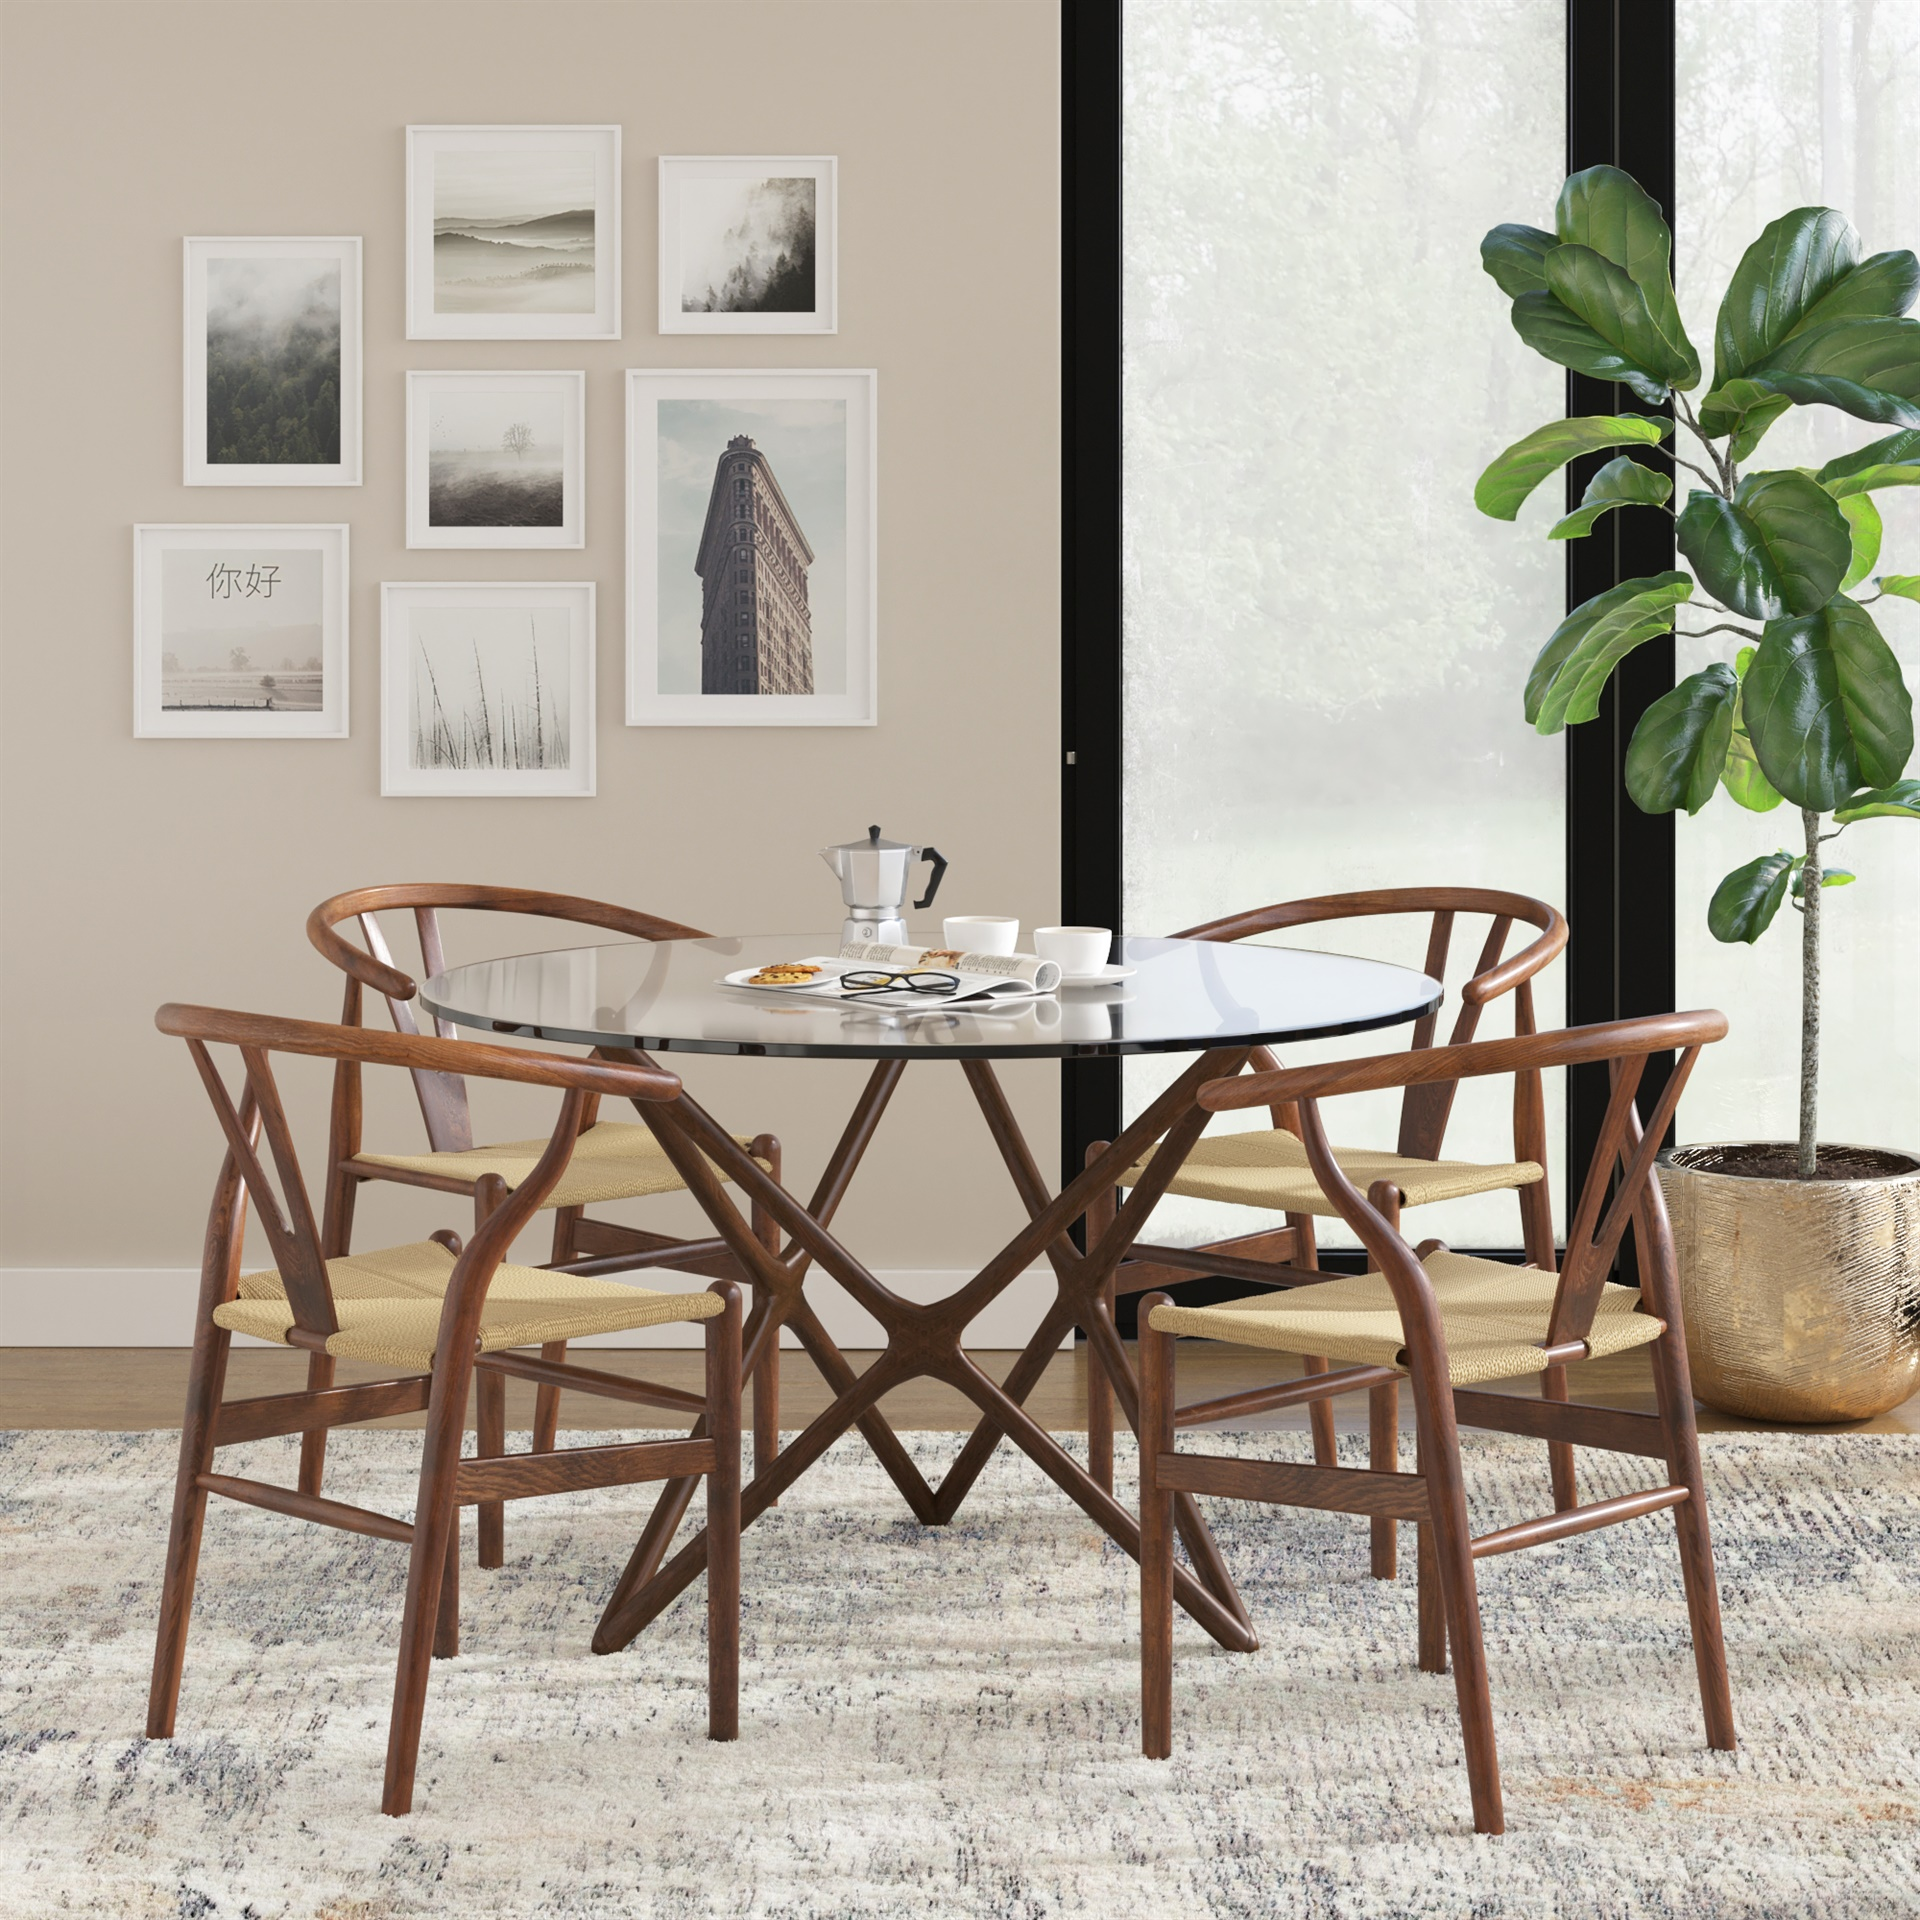 Wishbone Chairs Hans Wegner Ch24 Wishbone Chair